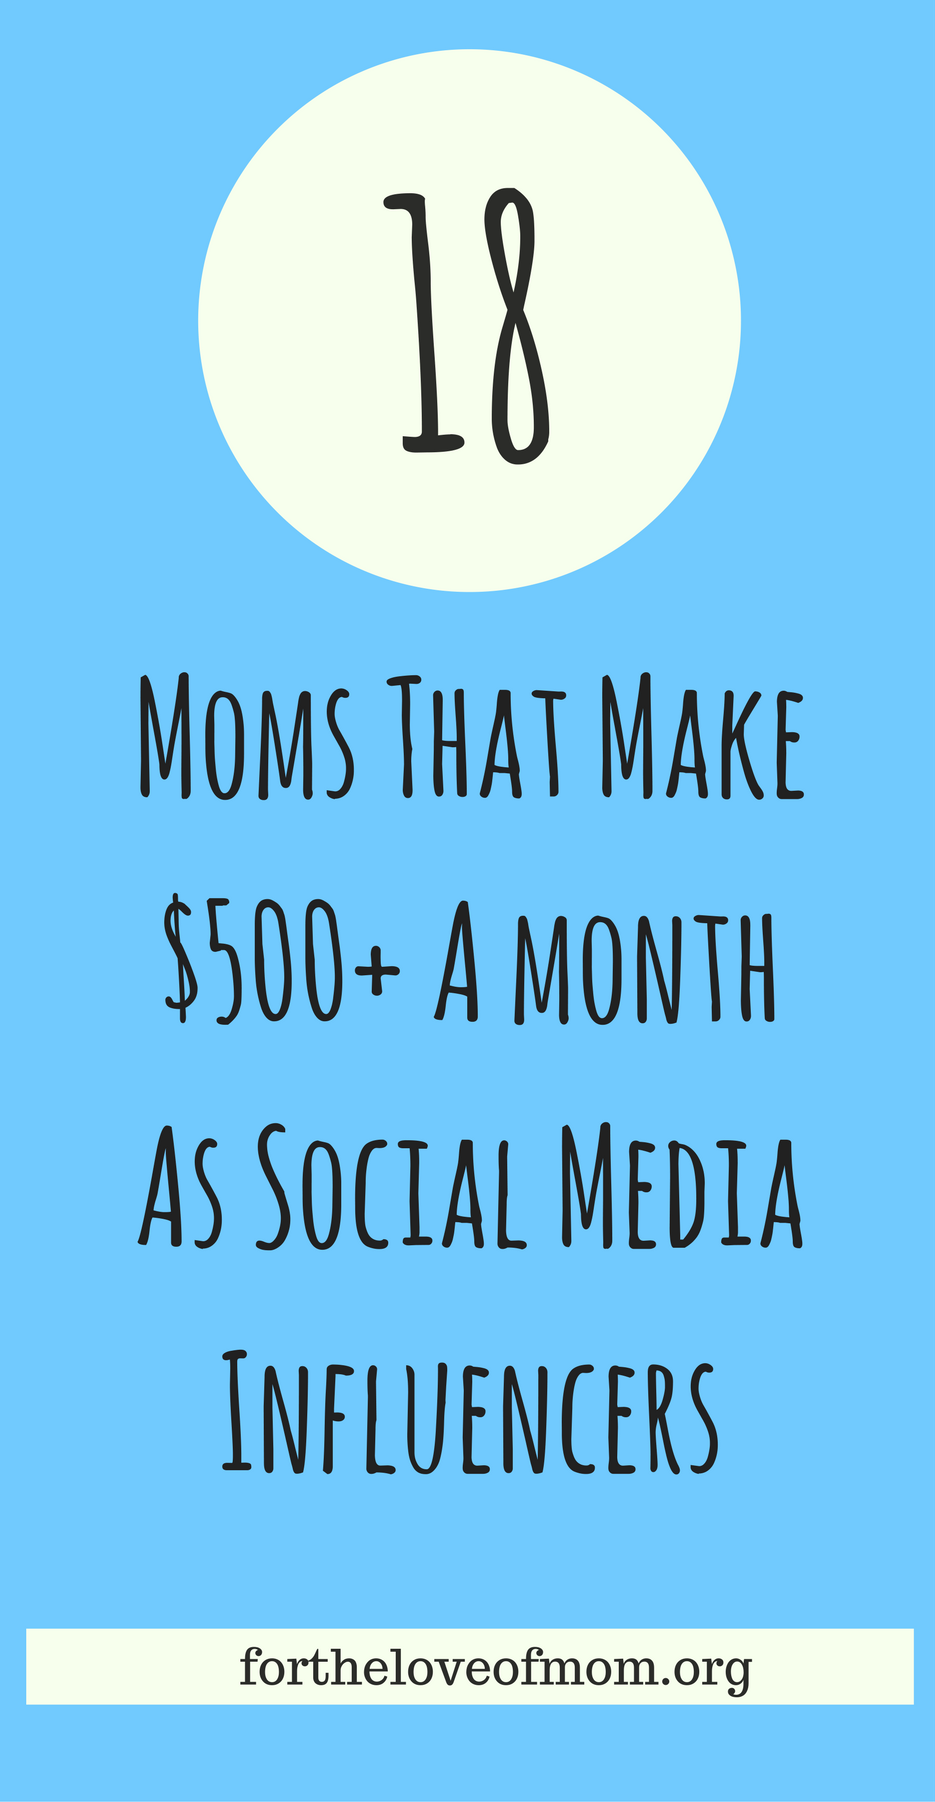 18 Moms $500+ Per Month As Social Media Influencers | Work At Home Mom Jobs | Legit Work From Home Jobs | How To Start Your Own Business | www.fortheloveofmom.org